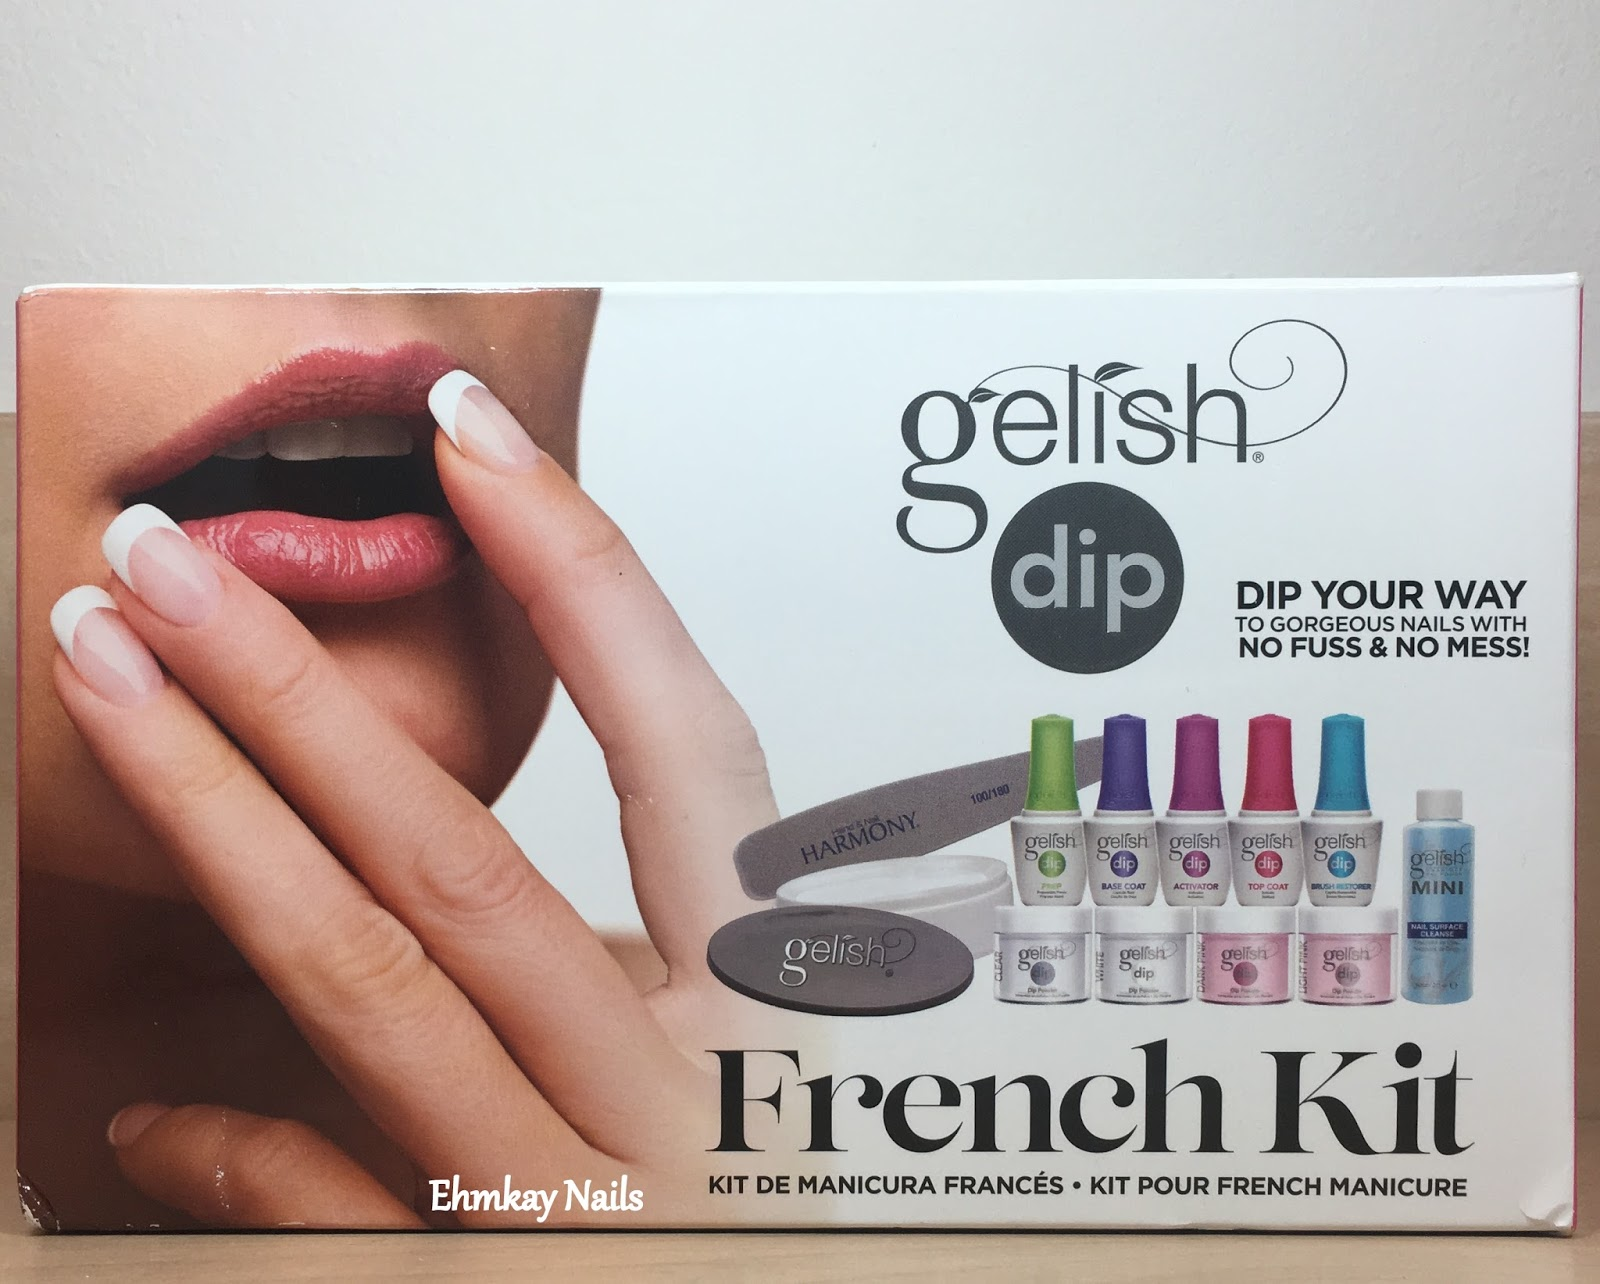 ehmkay nails: Gelish Dip Powder Manicure System